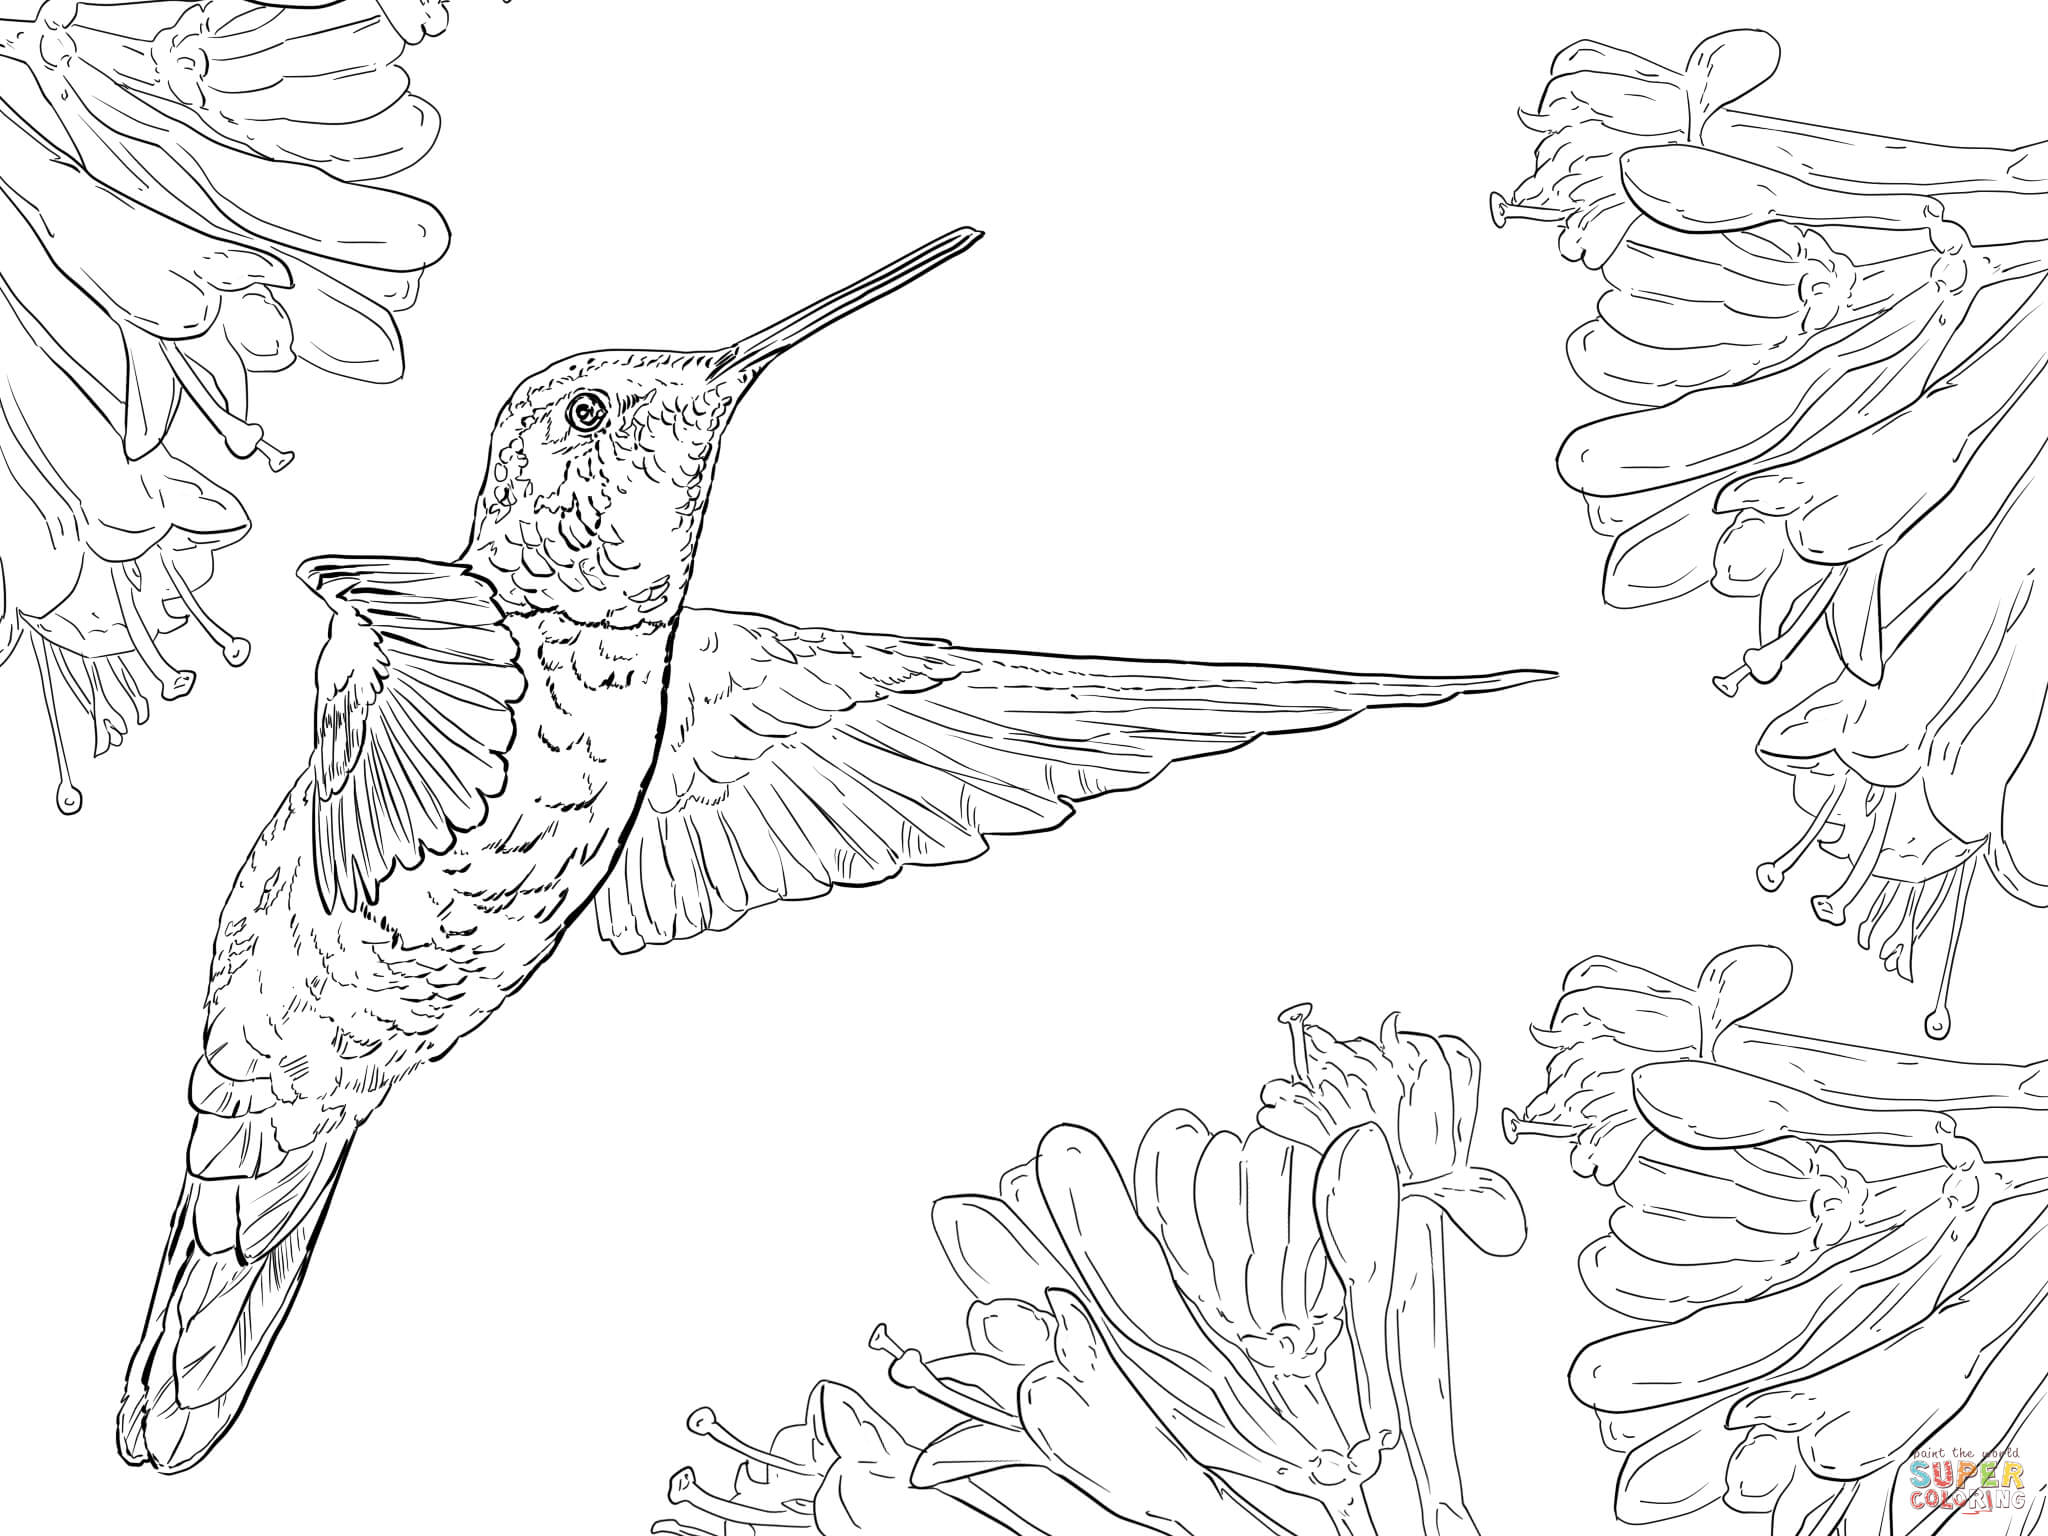 coloring pictures of hummingbirds hummingbird coloring download hummingbird coloring for of pictures hummingbirds coloring